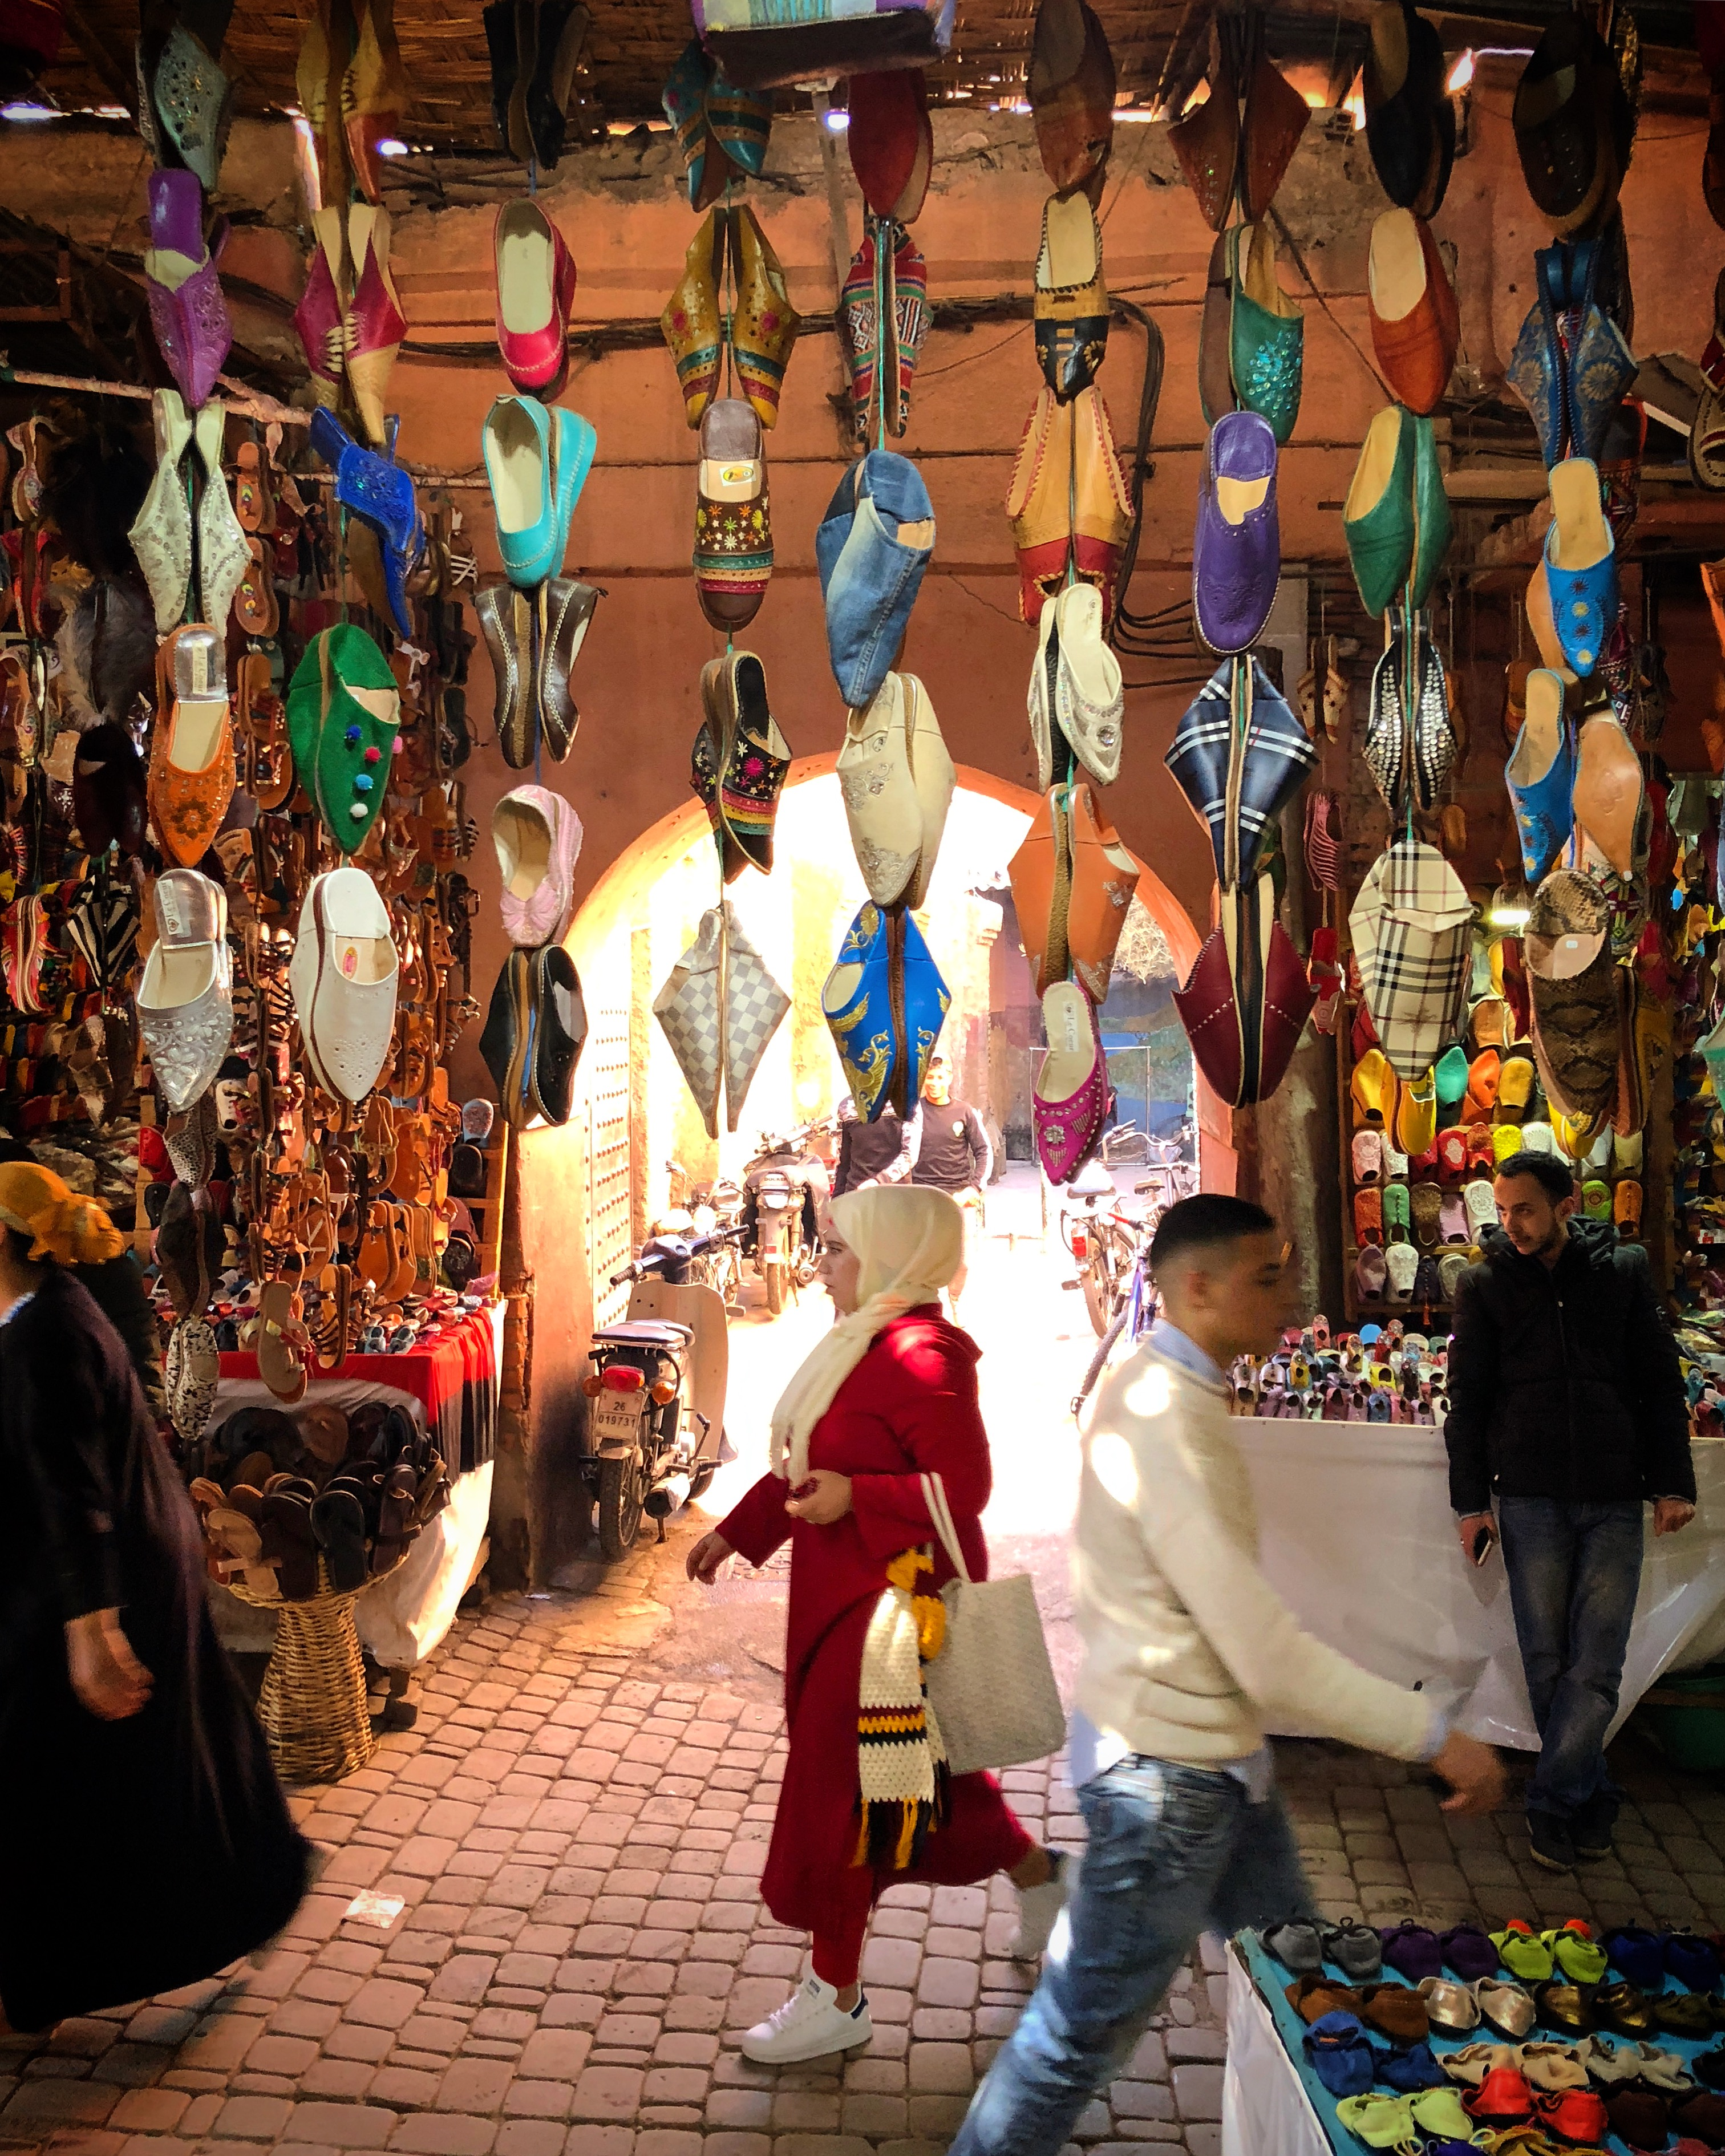 5 THINGS NOT TO MISS ON YOUR NEXT TRIP TO MOROCCO